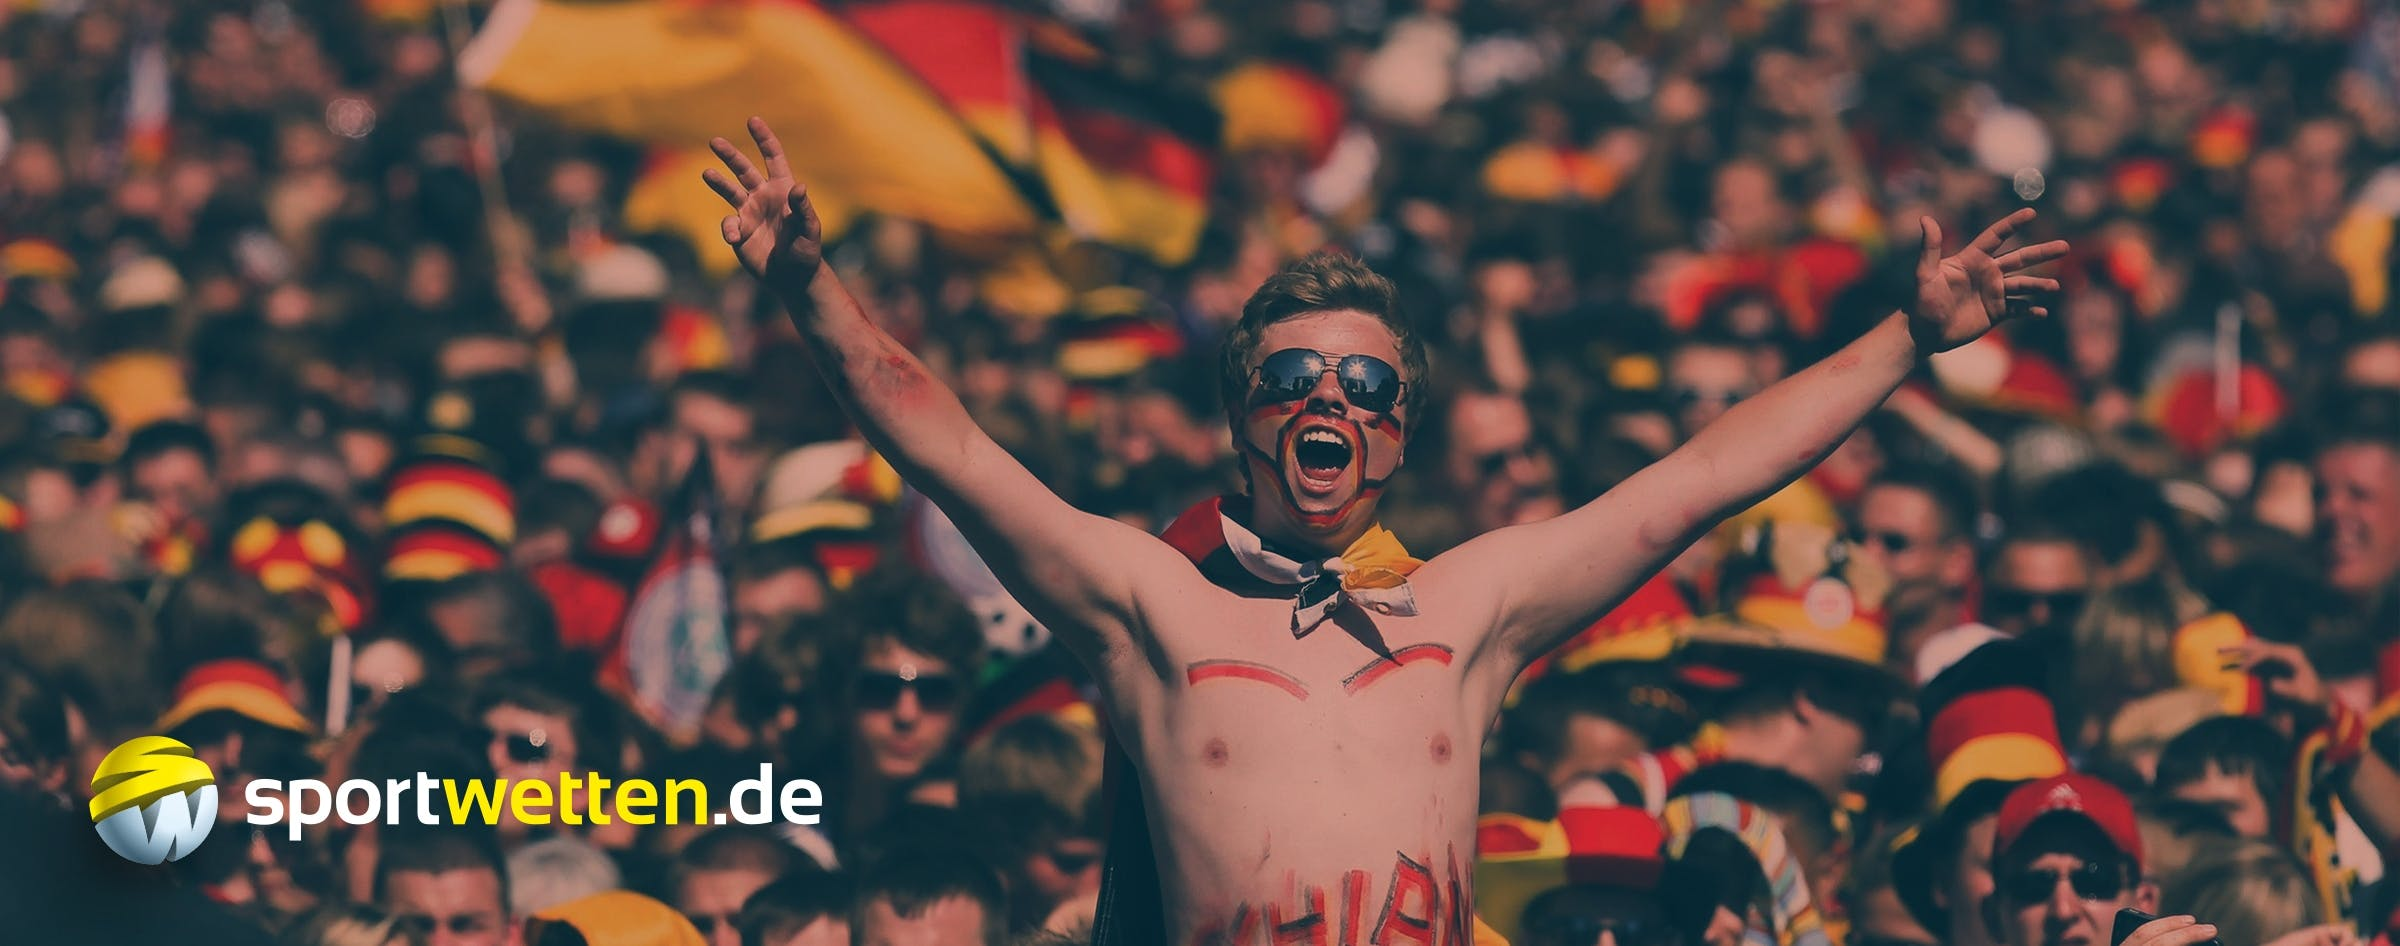 German Fans Sportwetten De Cropped